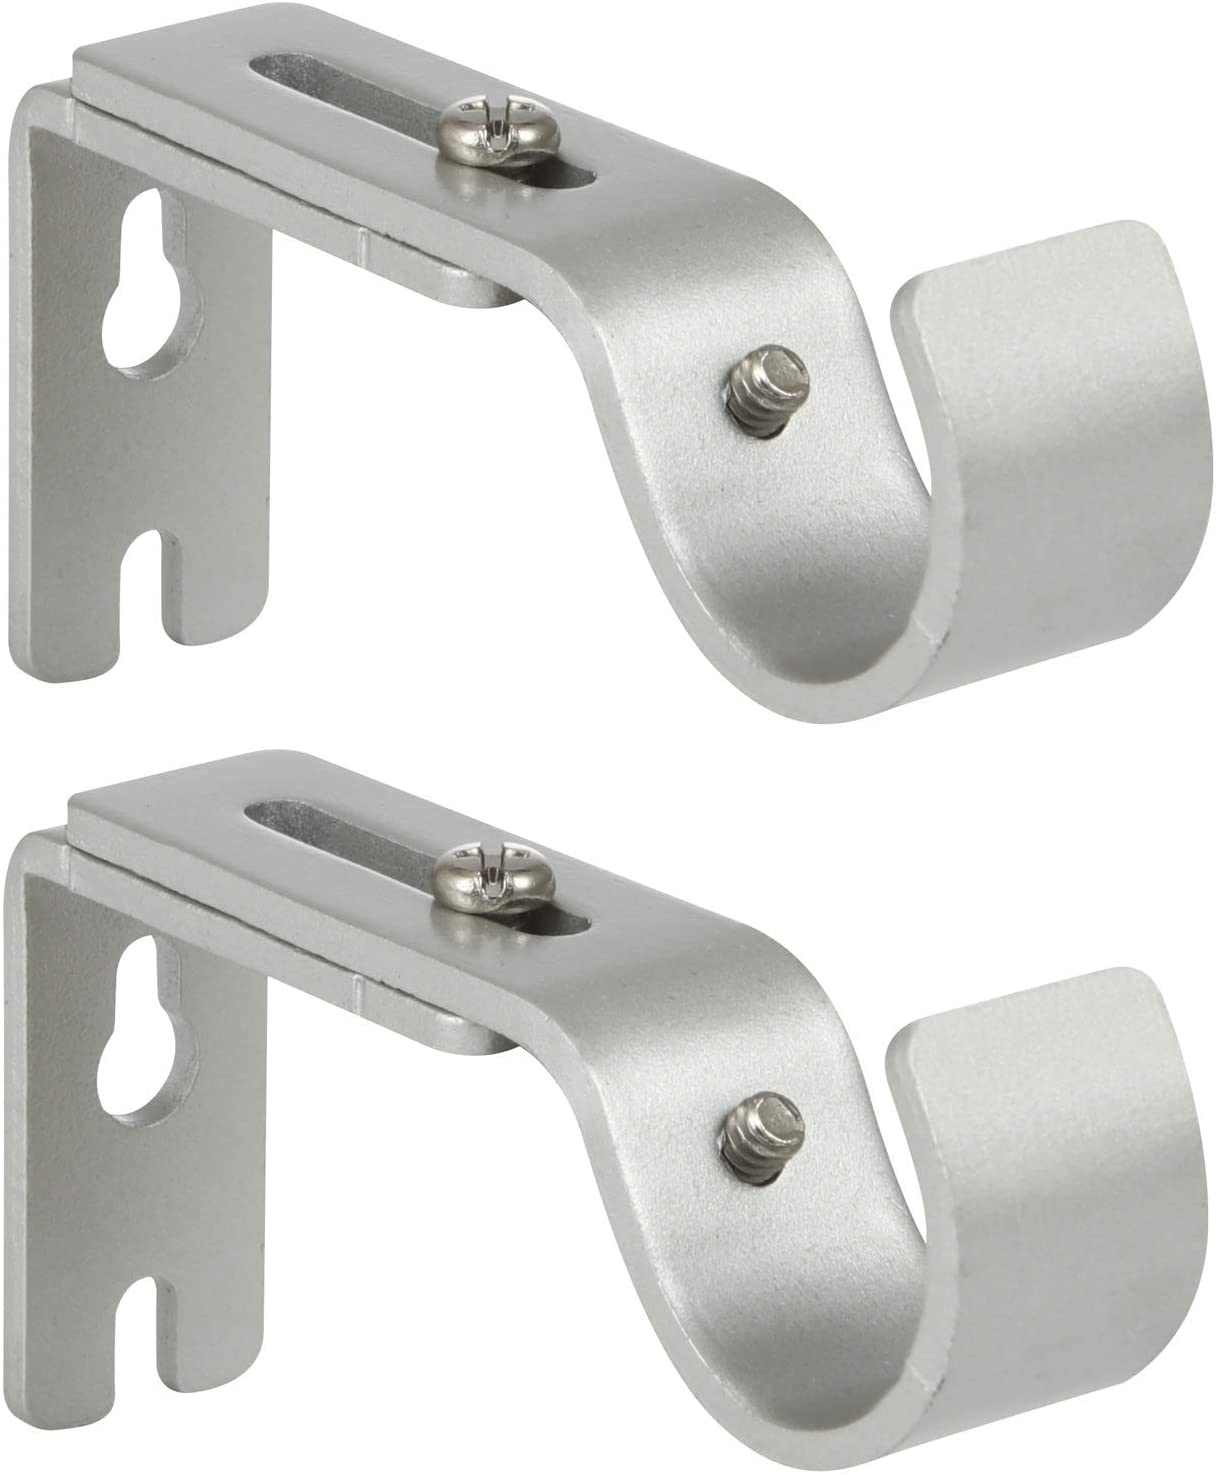 Anndason Heavy Duty Adjustable Curtain Rod Brackets Rod Holders for 1 Inch Rod, Silver Color, (Set of 2)